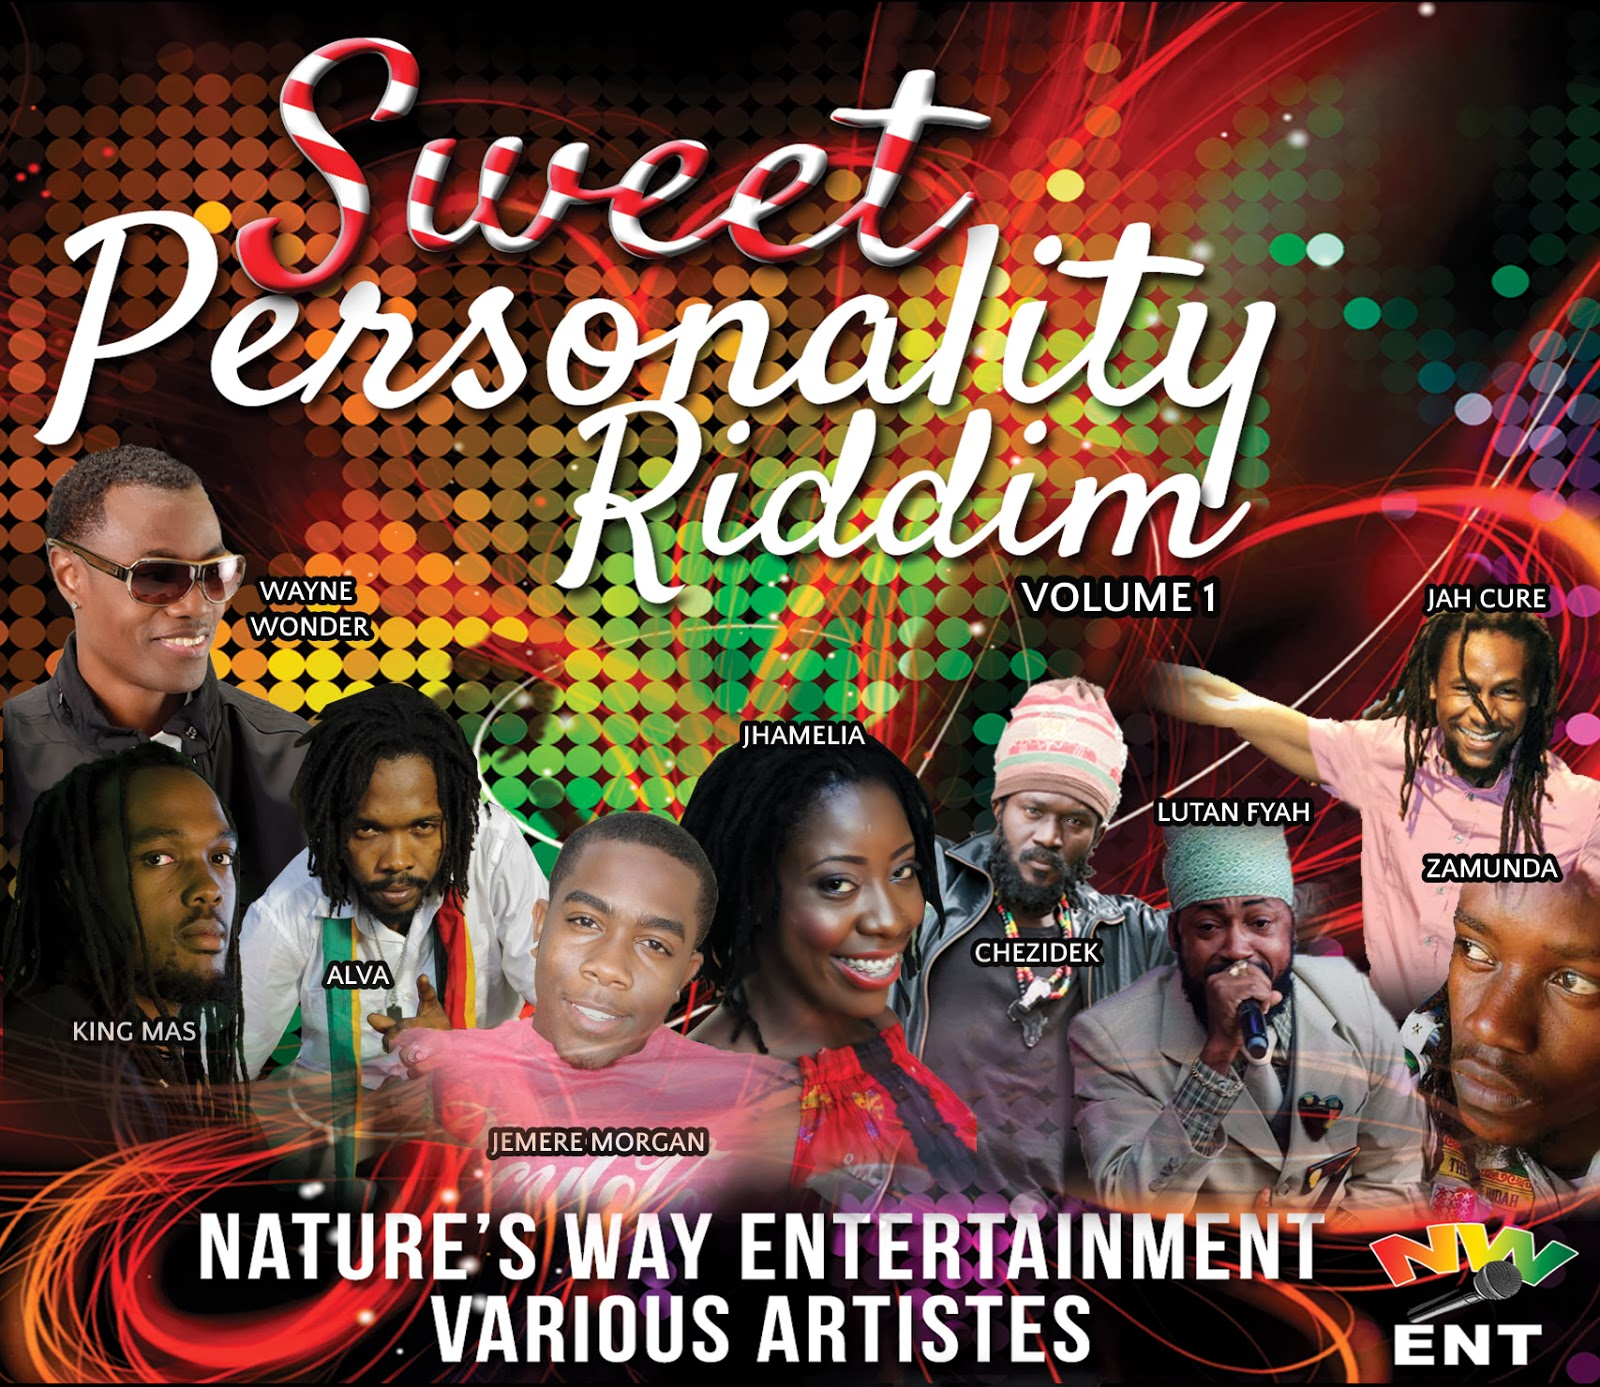 Sweet-Personality-Riddim-Natures-Way-Entertainment-Cover